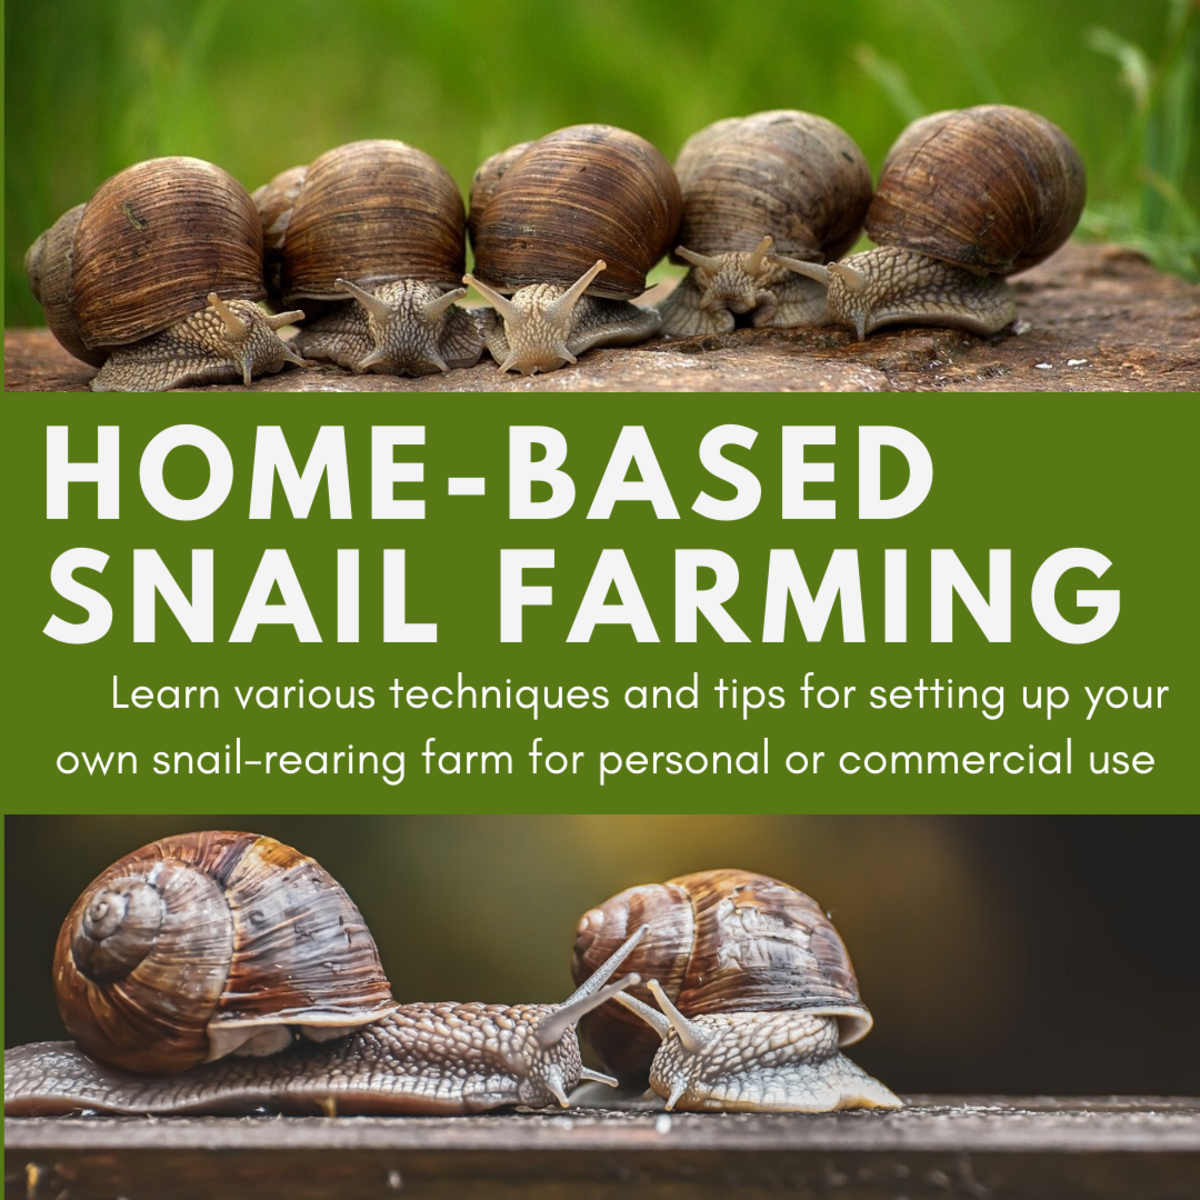 This guide will provide you with all the information you need to know to start your own snail-rearing farm in your own home or backyard.